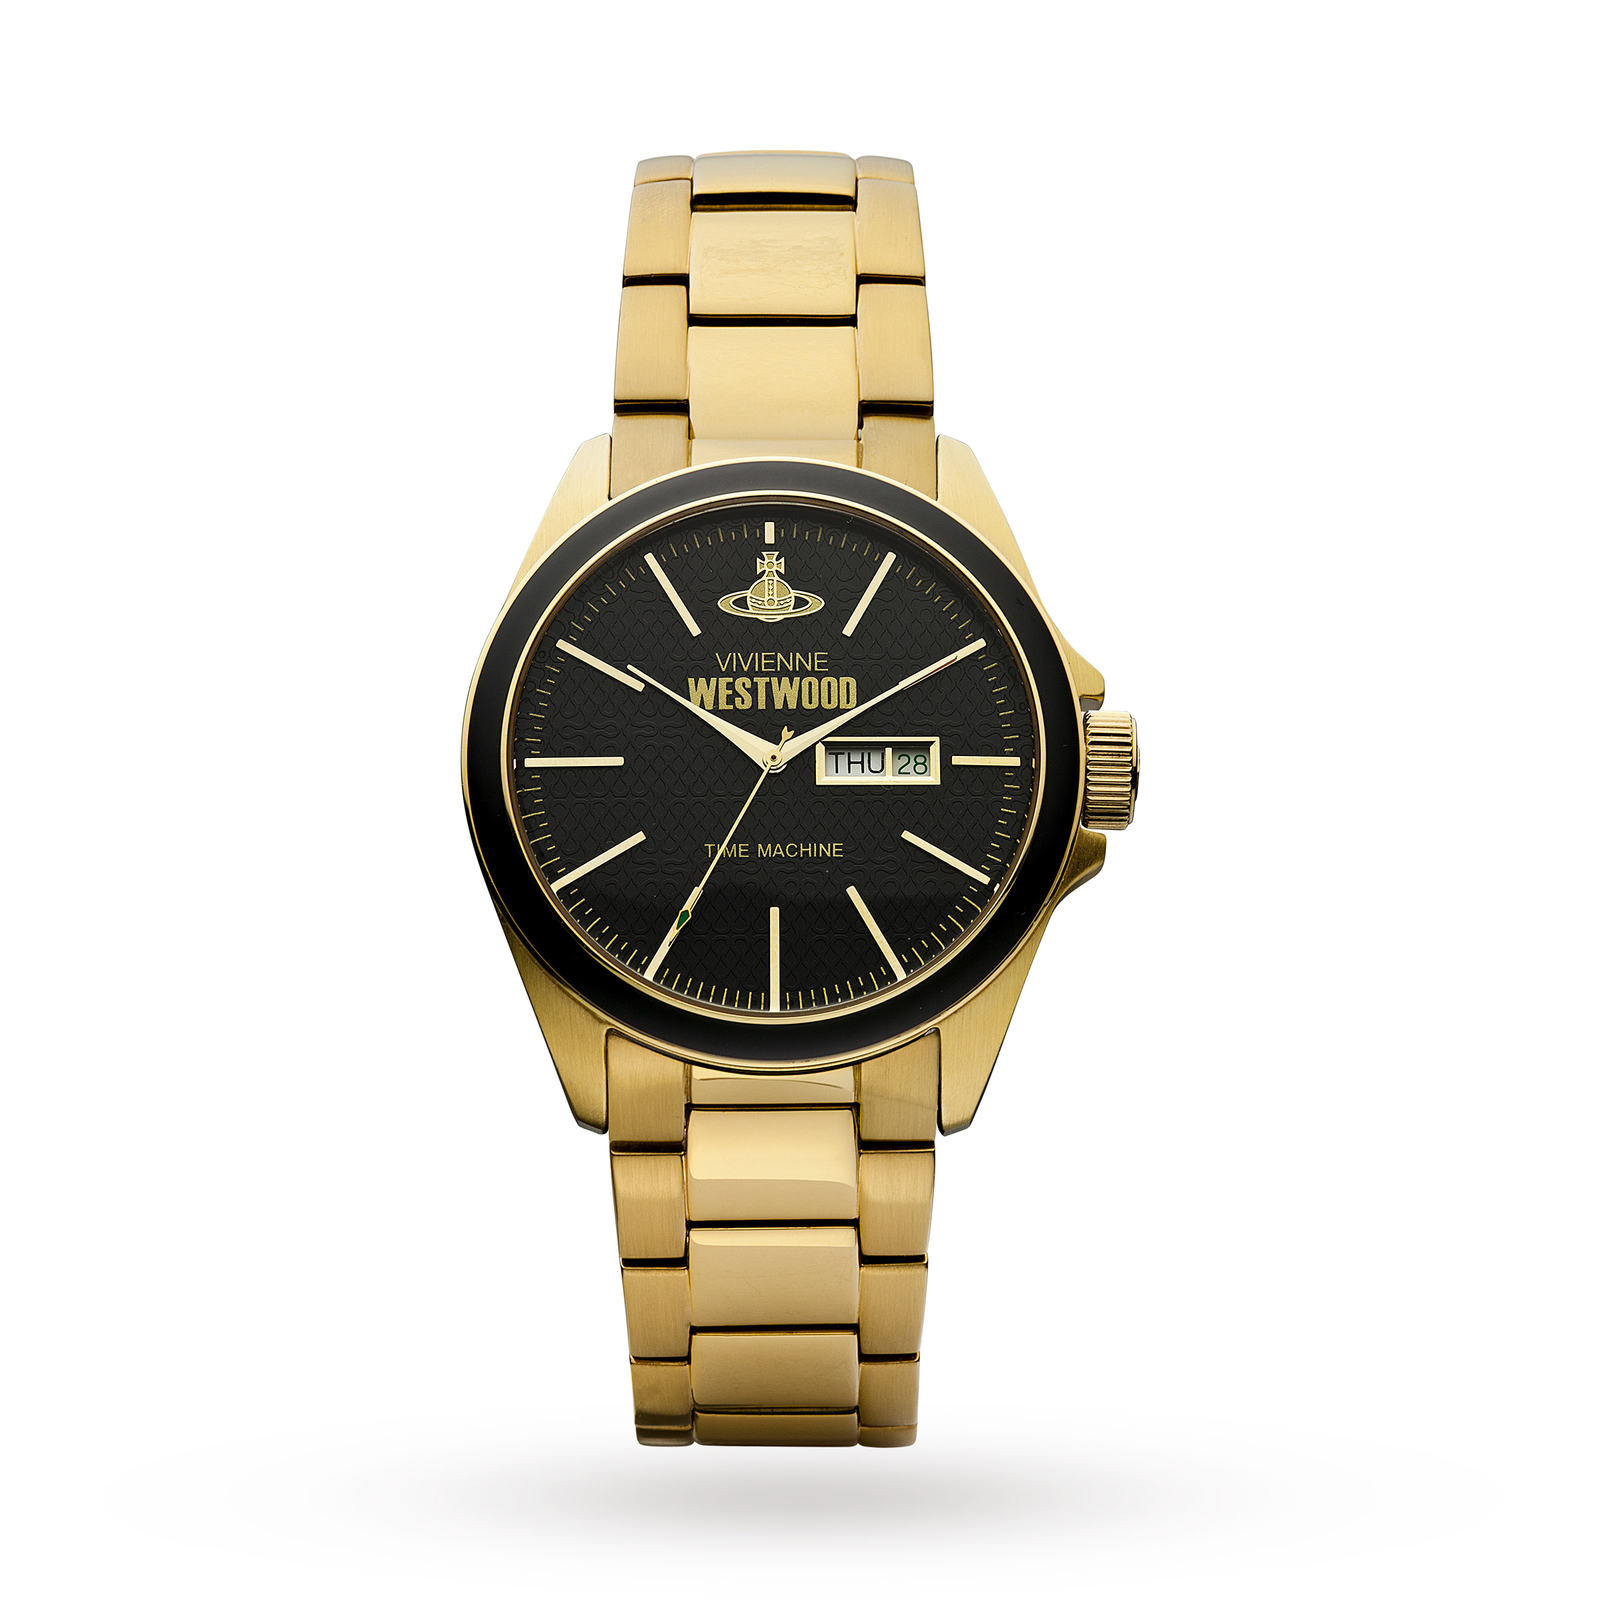 Vivienne Westwood Camden Lock Gold Plated Watch